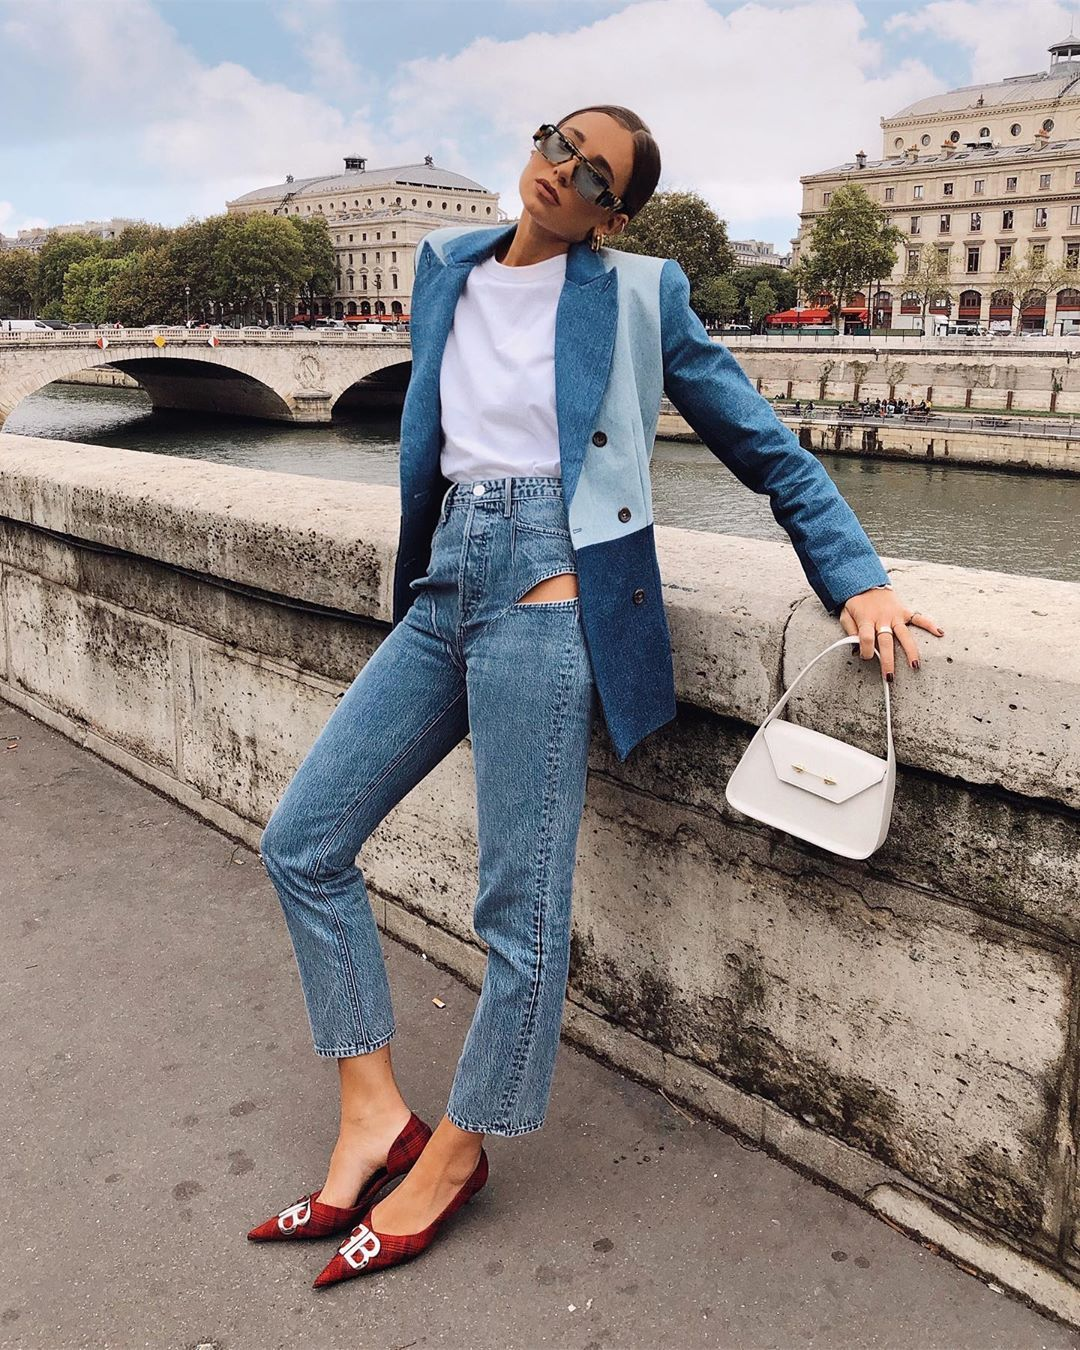 danielle-bernstein-canadian-tuxedo-fall-2019-outfit-street-style